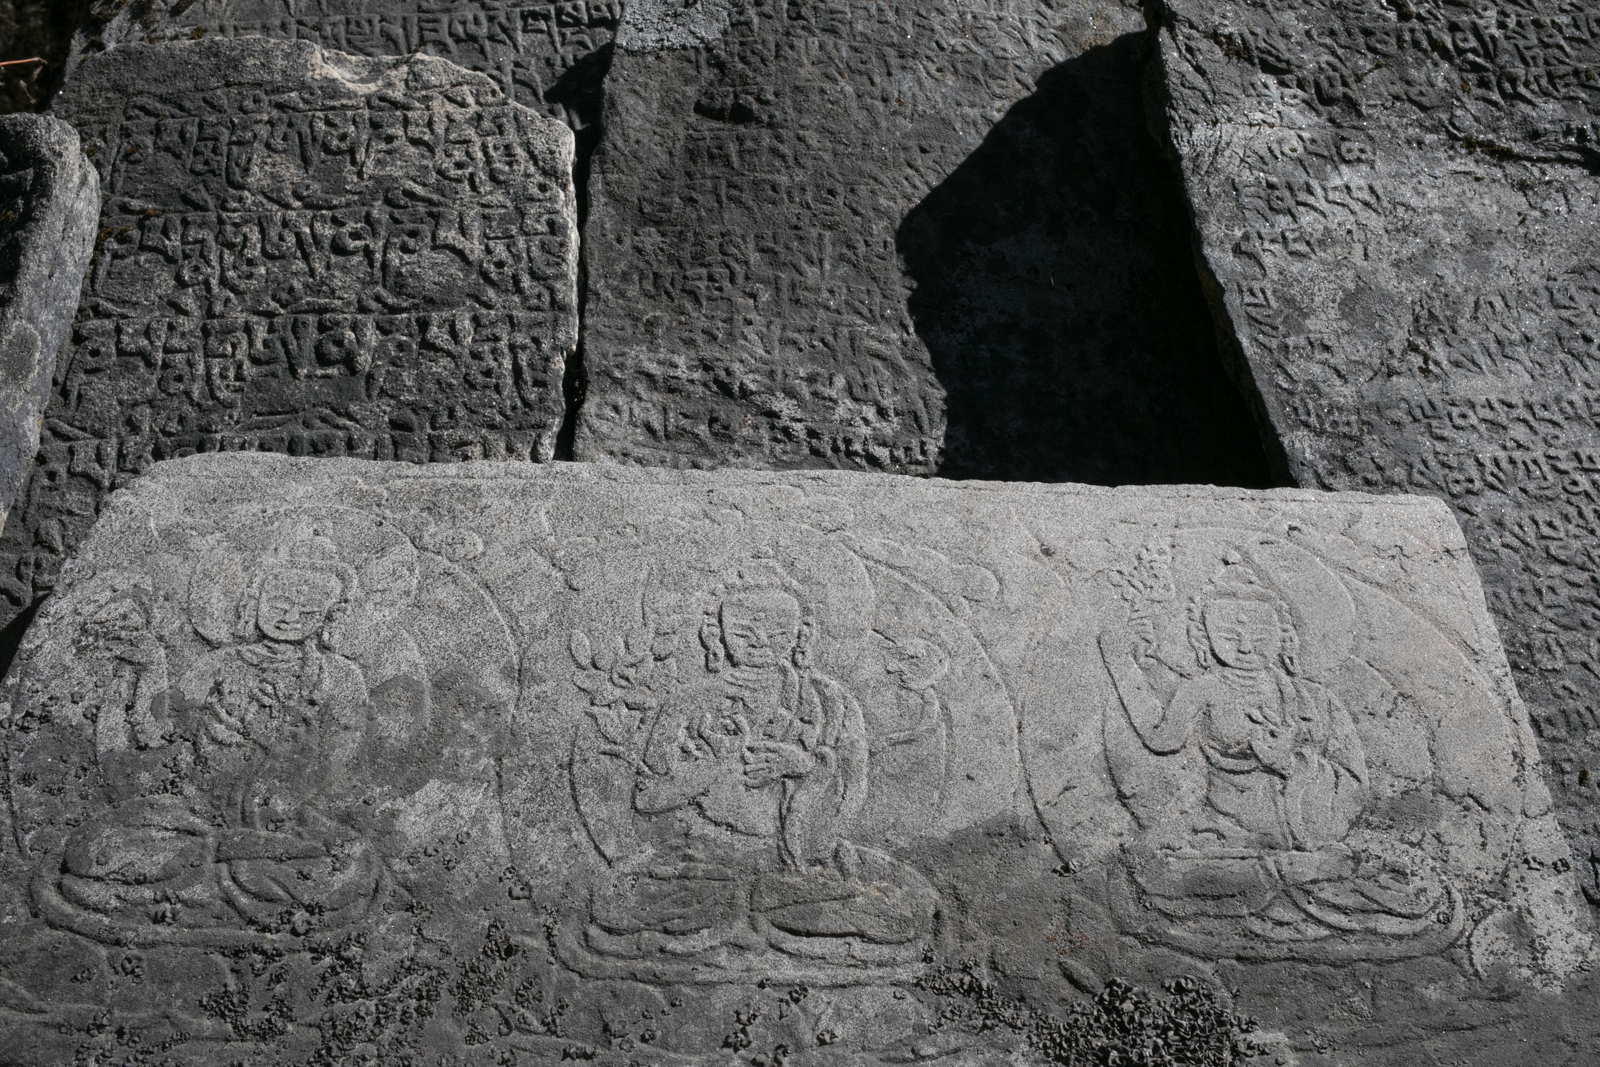 Stone carvings.  Mani stones.